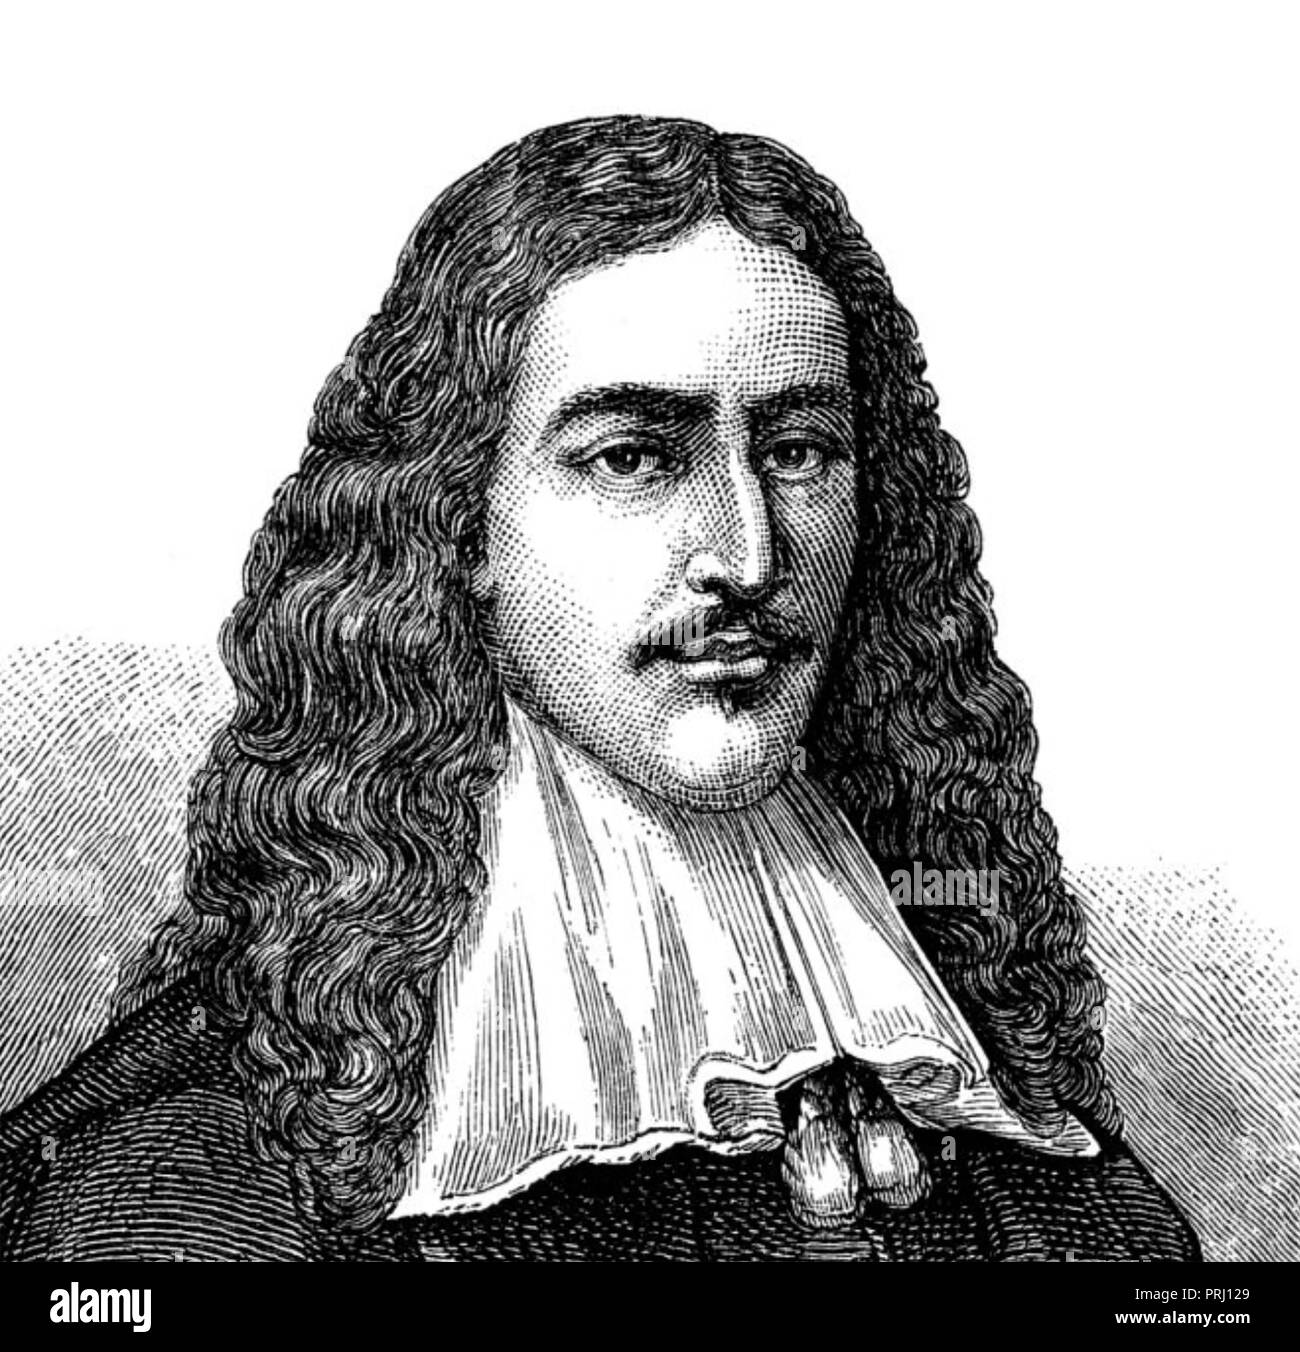 JOHAN de WITT (1625-1672) Dutch politician - Stock Image